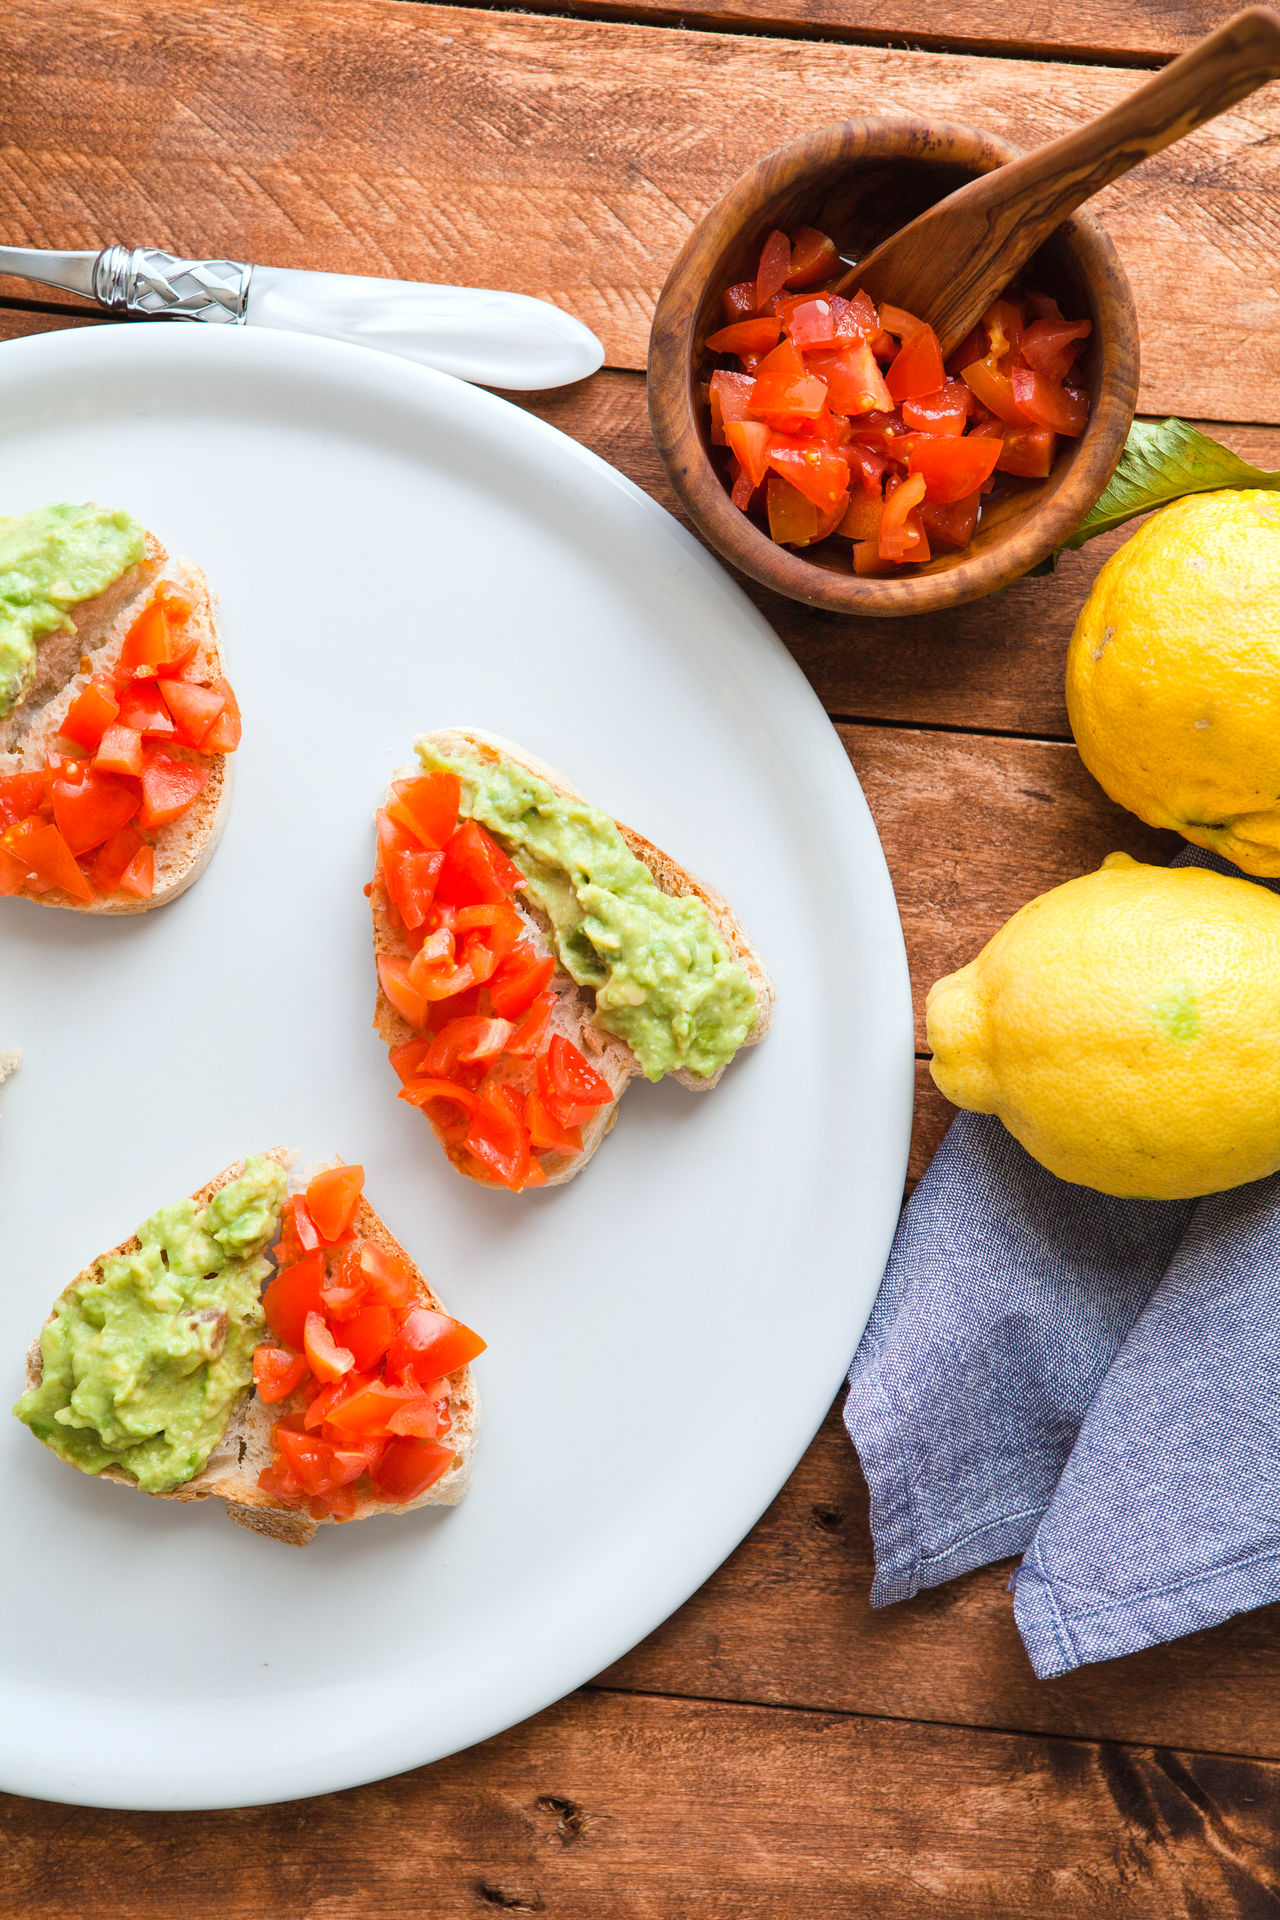 Heart shaped bruschetta with guacamole sauce and chopped tomato. Bread Bruschetta Ignorante Chopped Freshness Guacamole Healthy Eating Heart Shape Messy No People Plate Ready-to-eat Real Life Rustic Tomato Wood